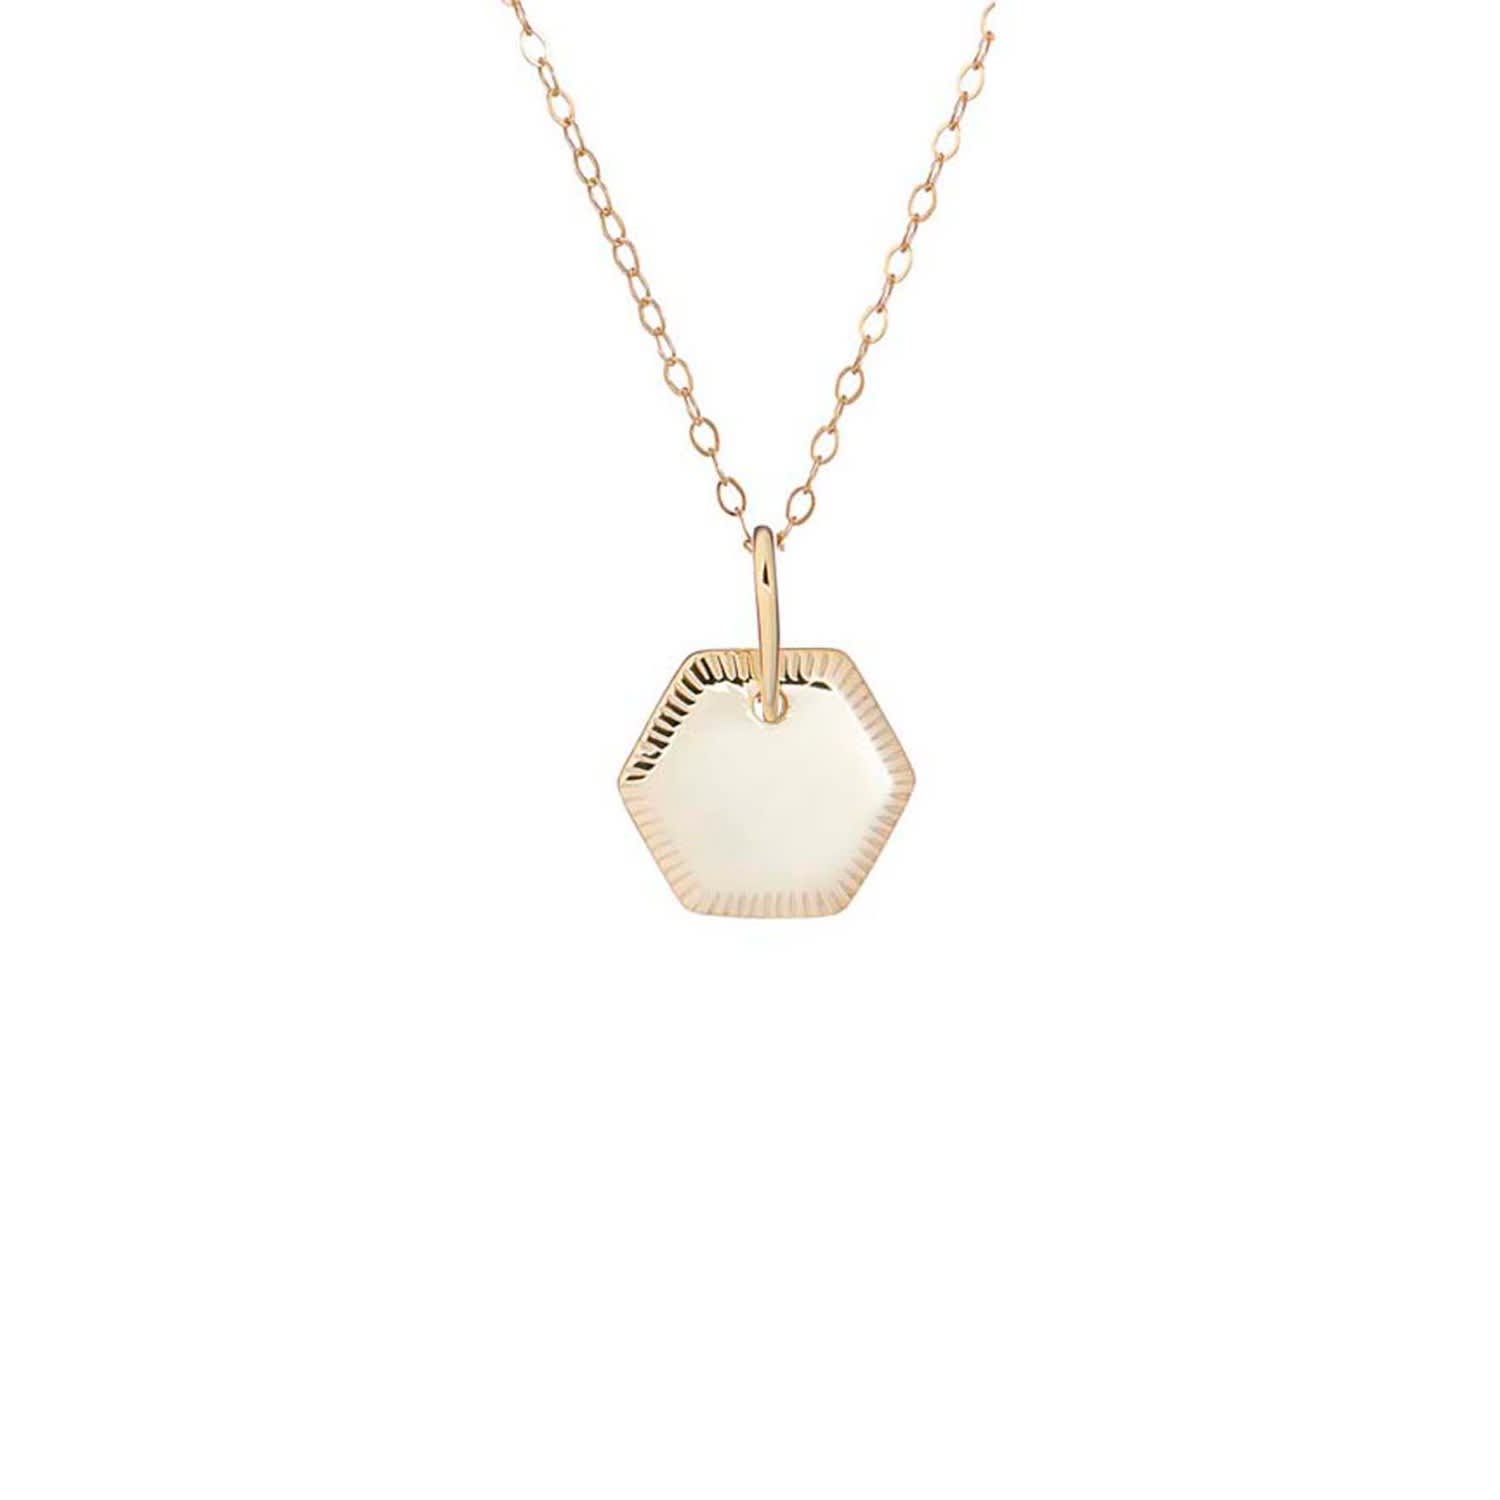 ebe06b077f13c Gold Disc Pendant With Engraved Edge Detail With Chain by One and One Studio